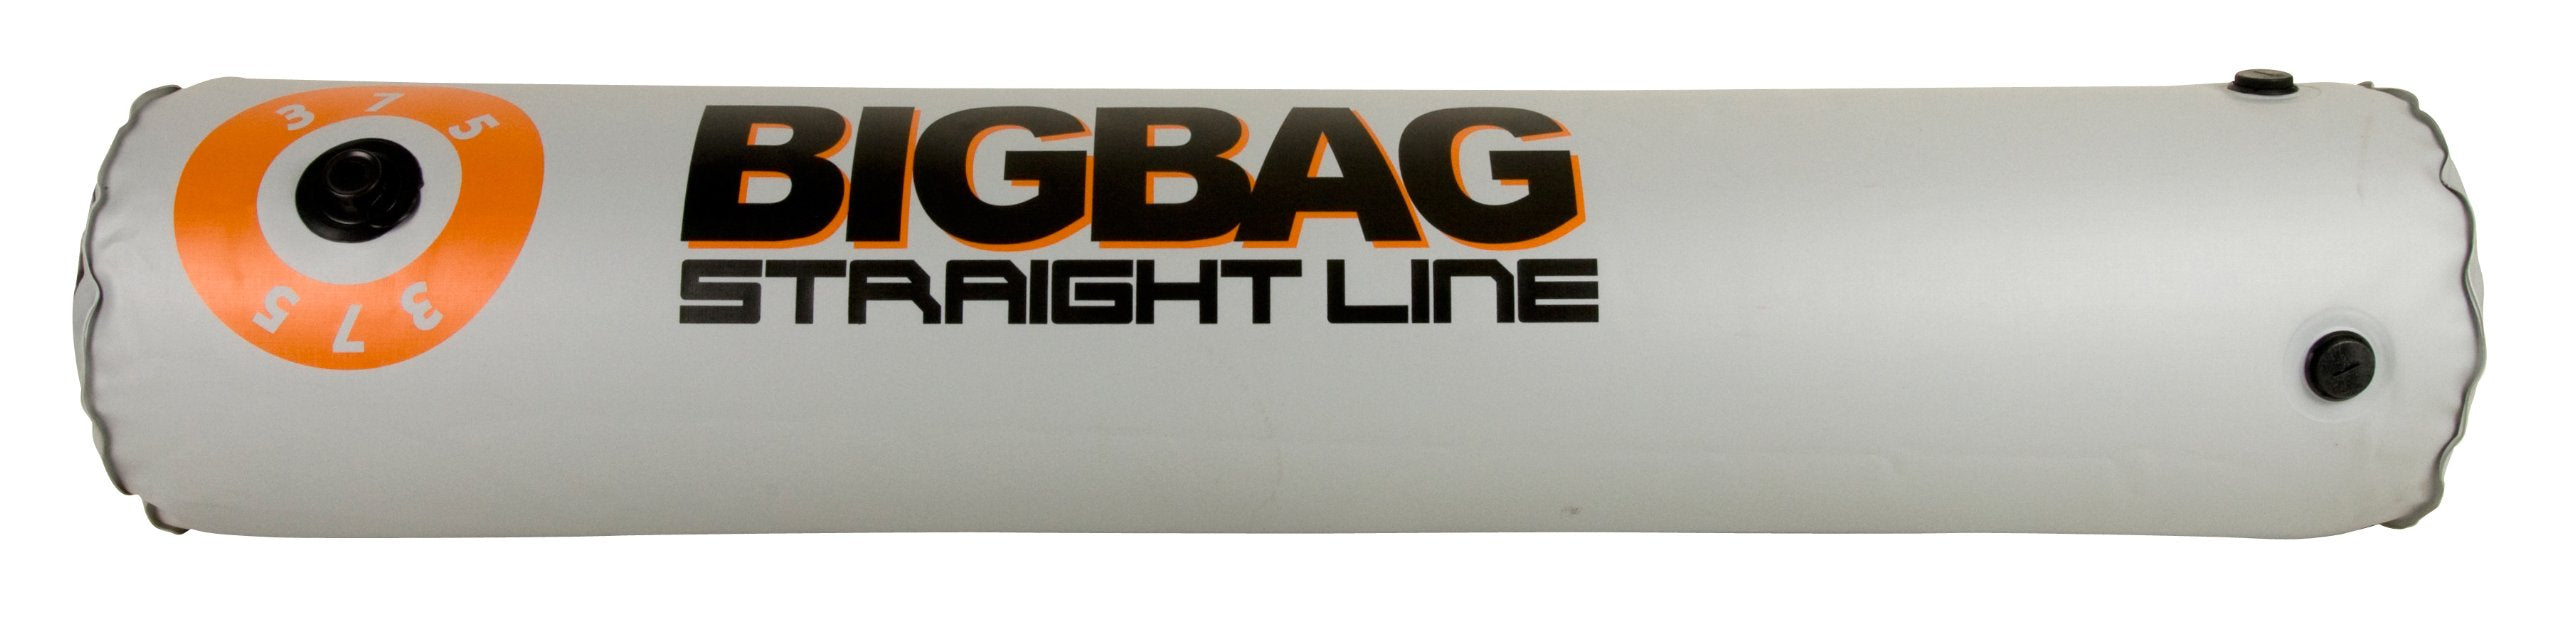 Straightline Sumo Big Bag 375 pounds. Single Ballast Bag